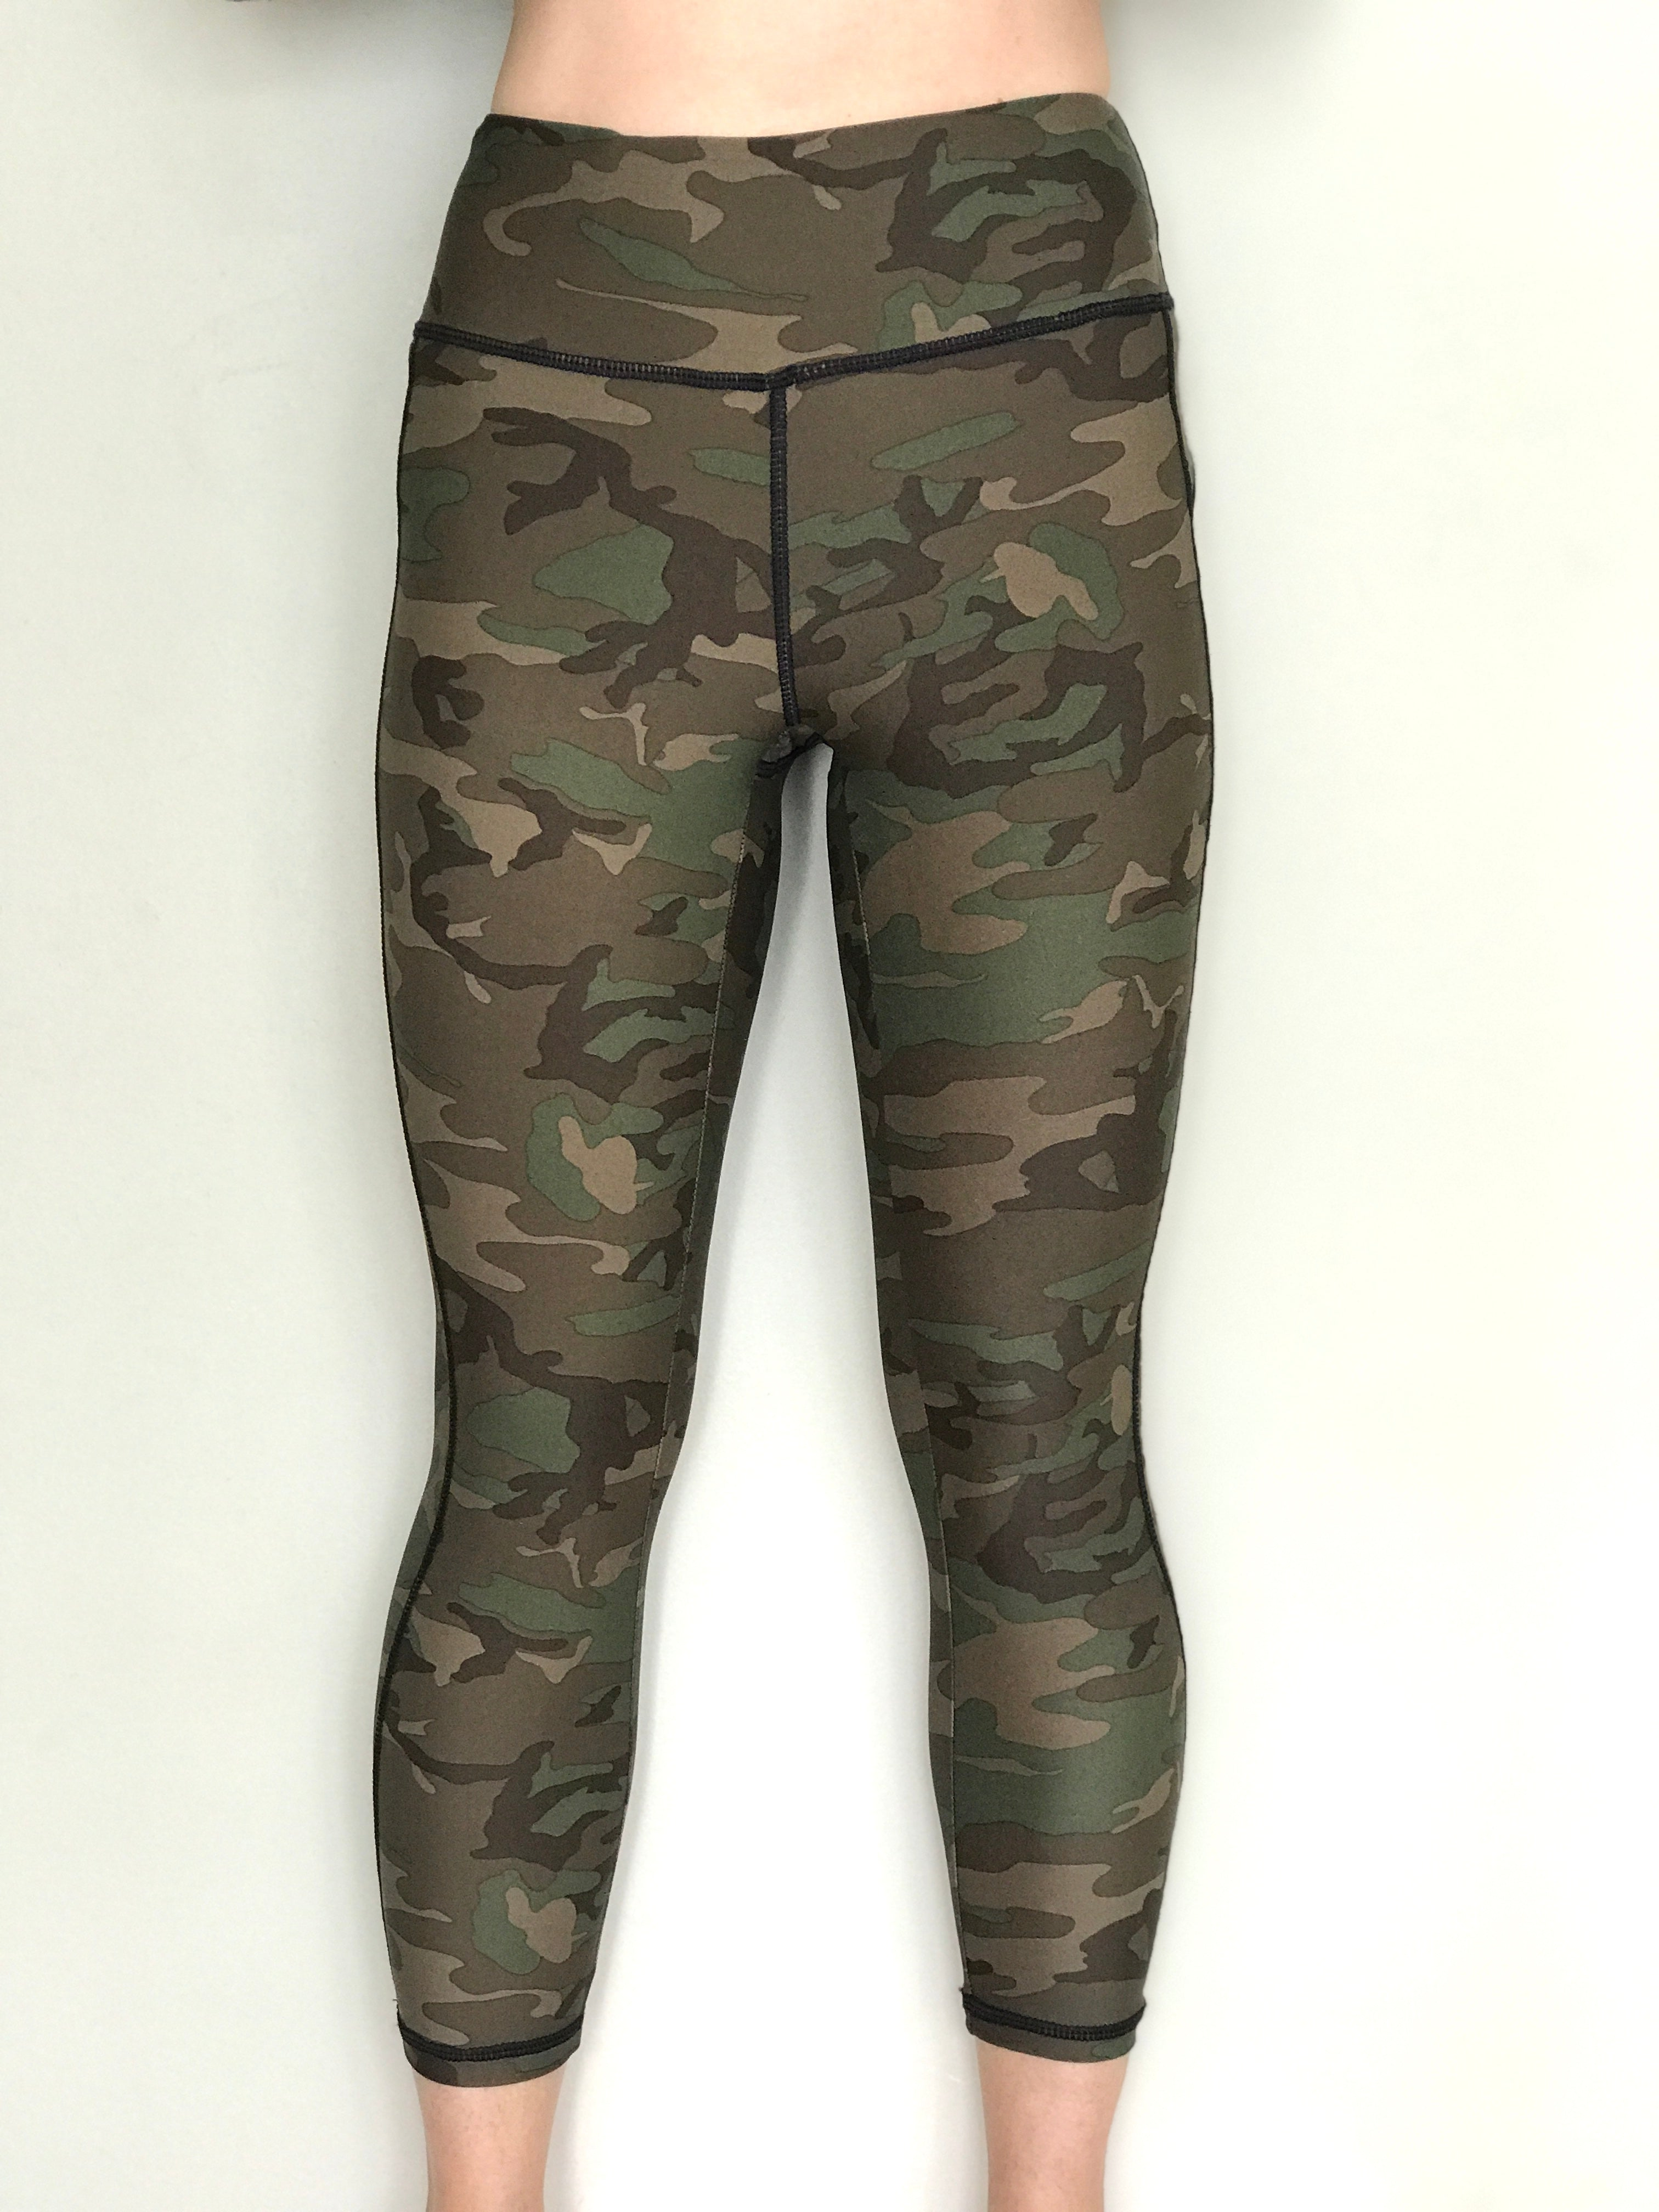 Gym Leggings - Camo 2